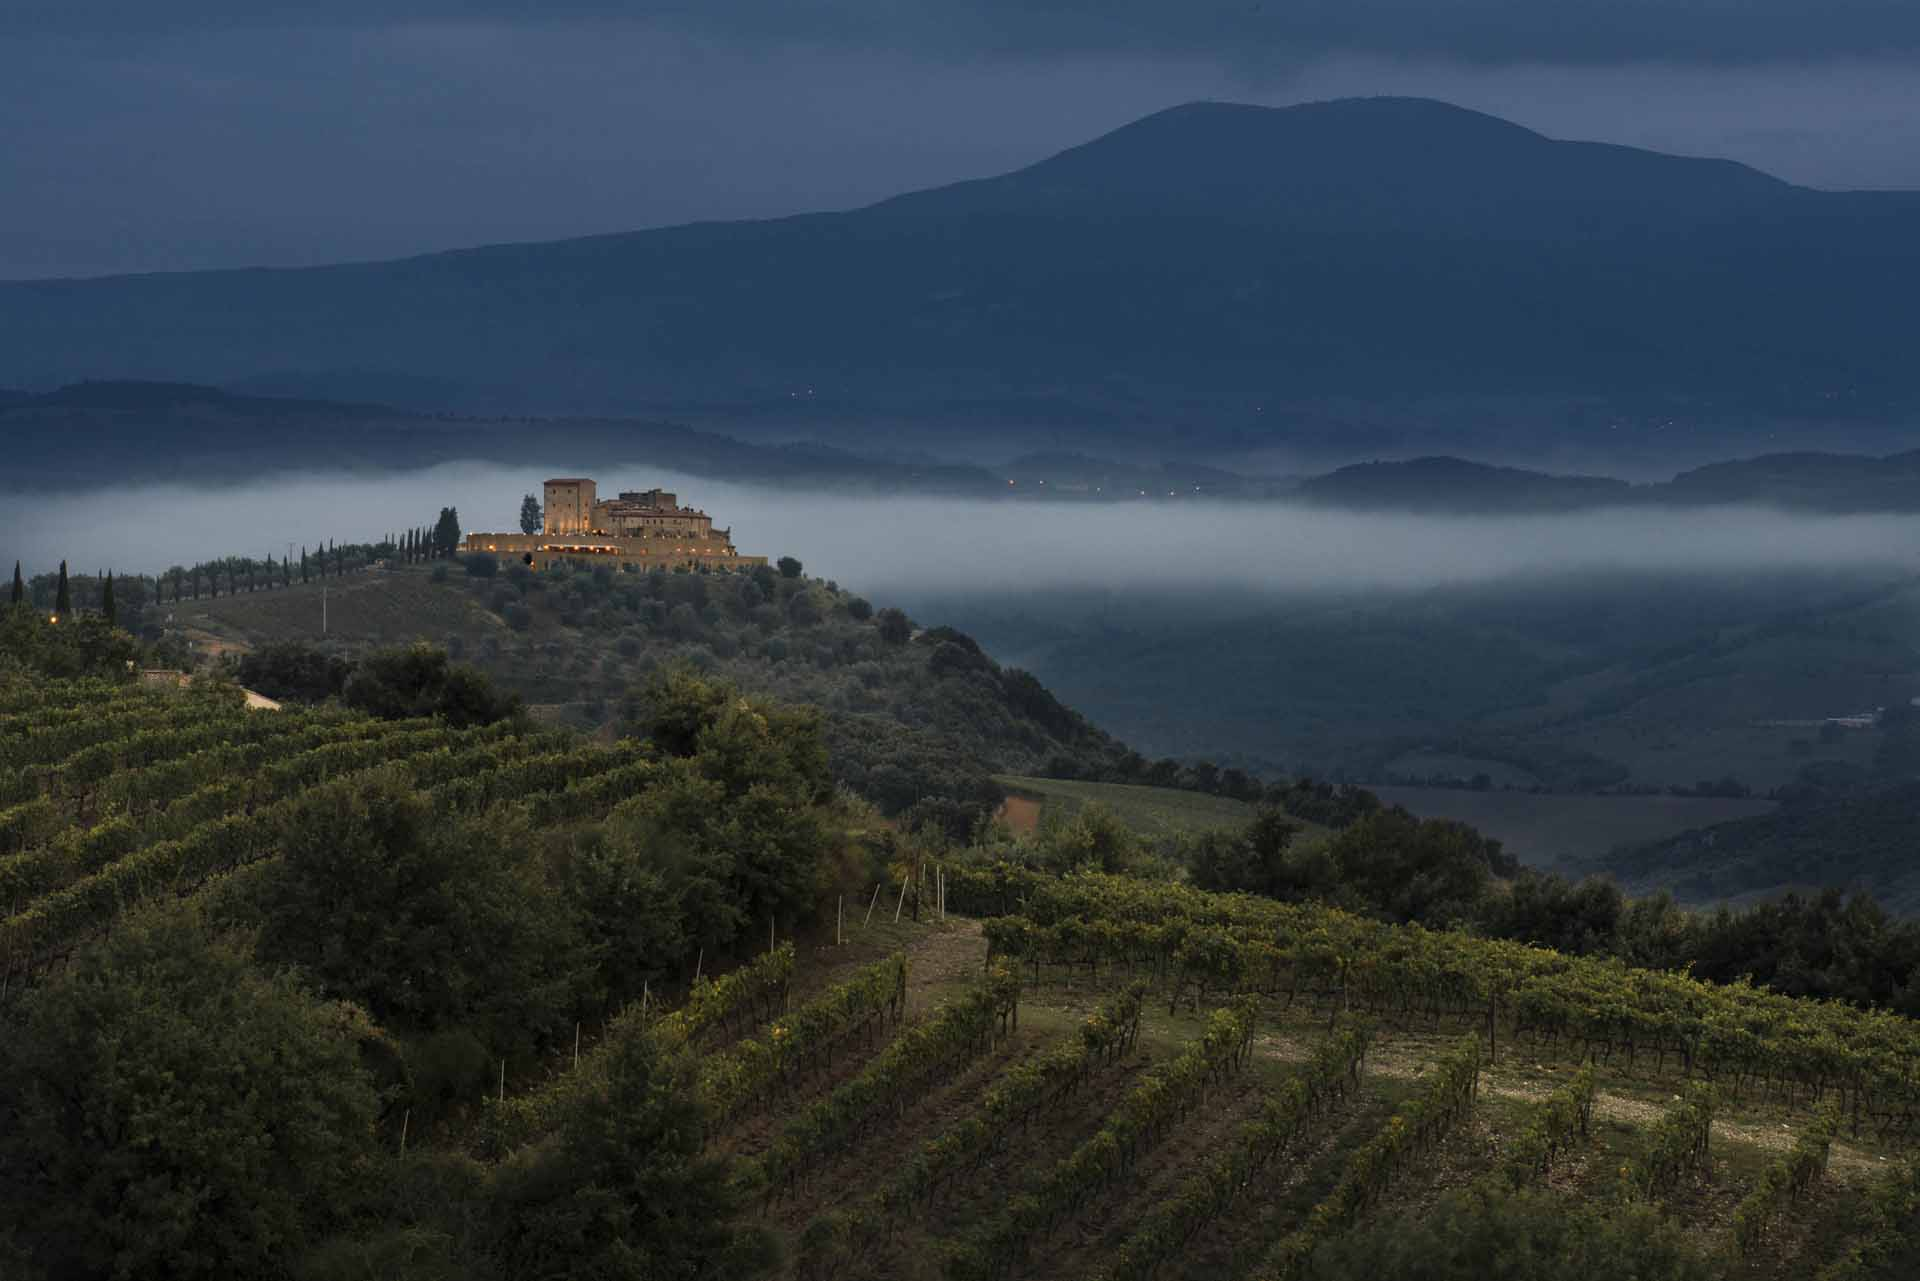 castello di velona resort, thermal spa & winery Montalcino 00013